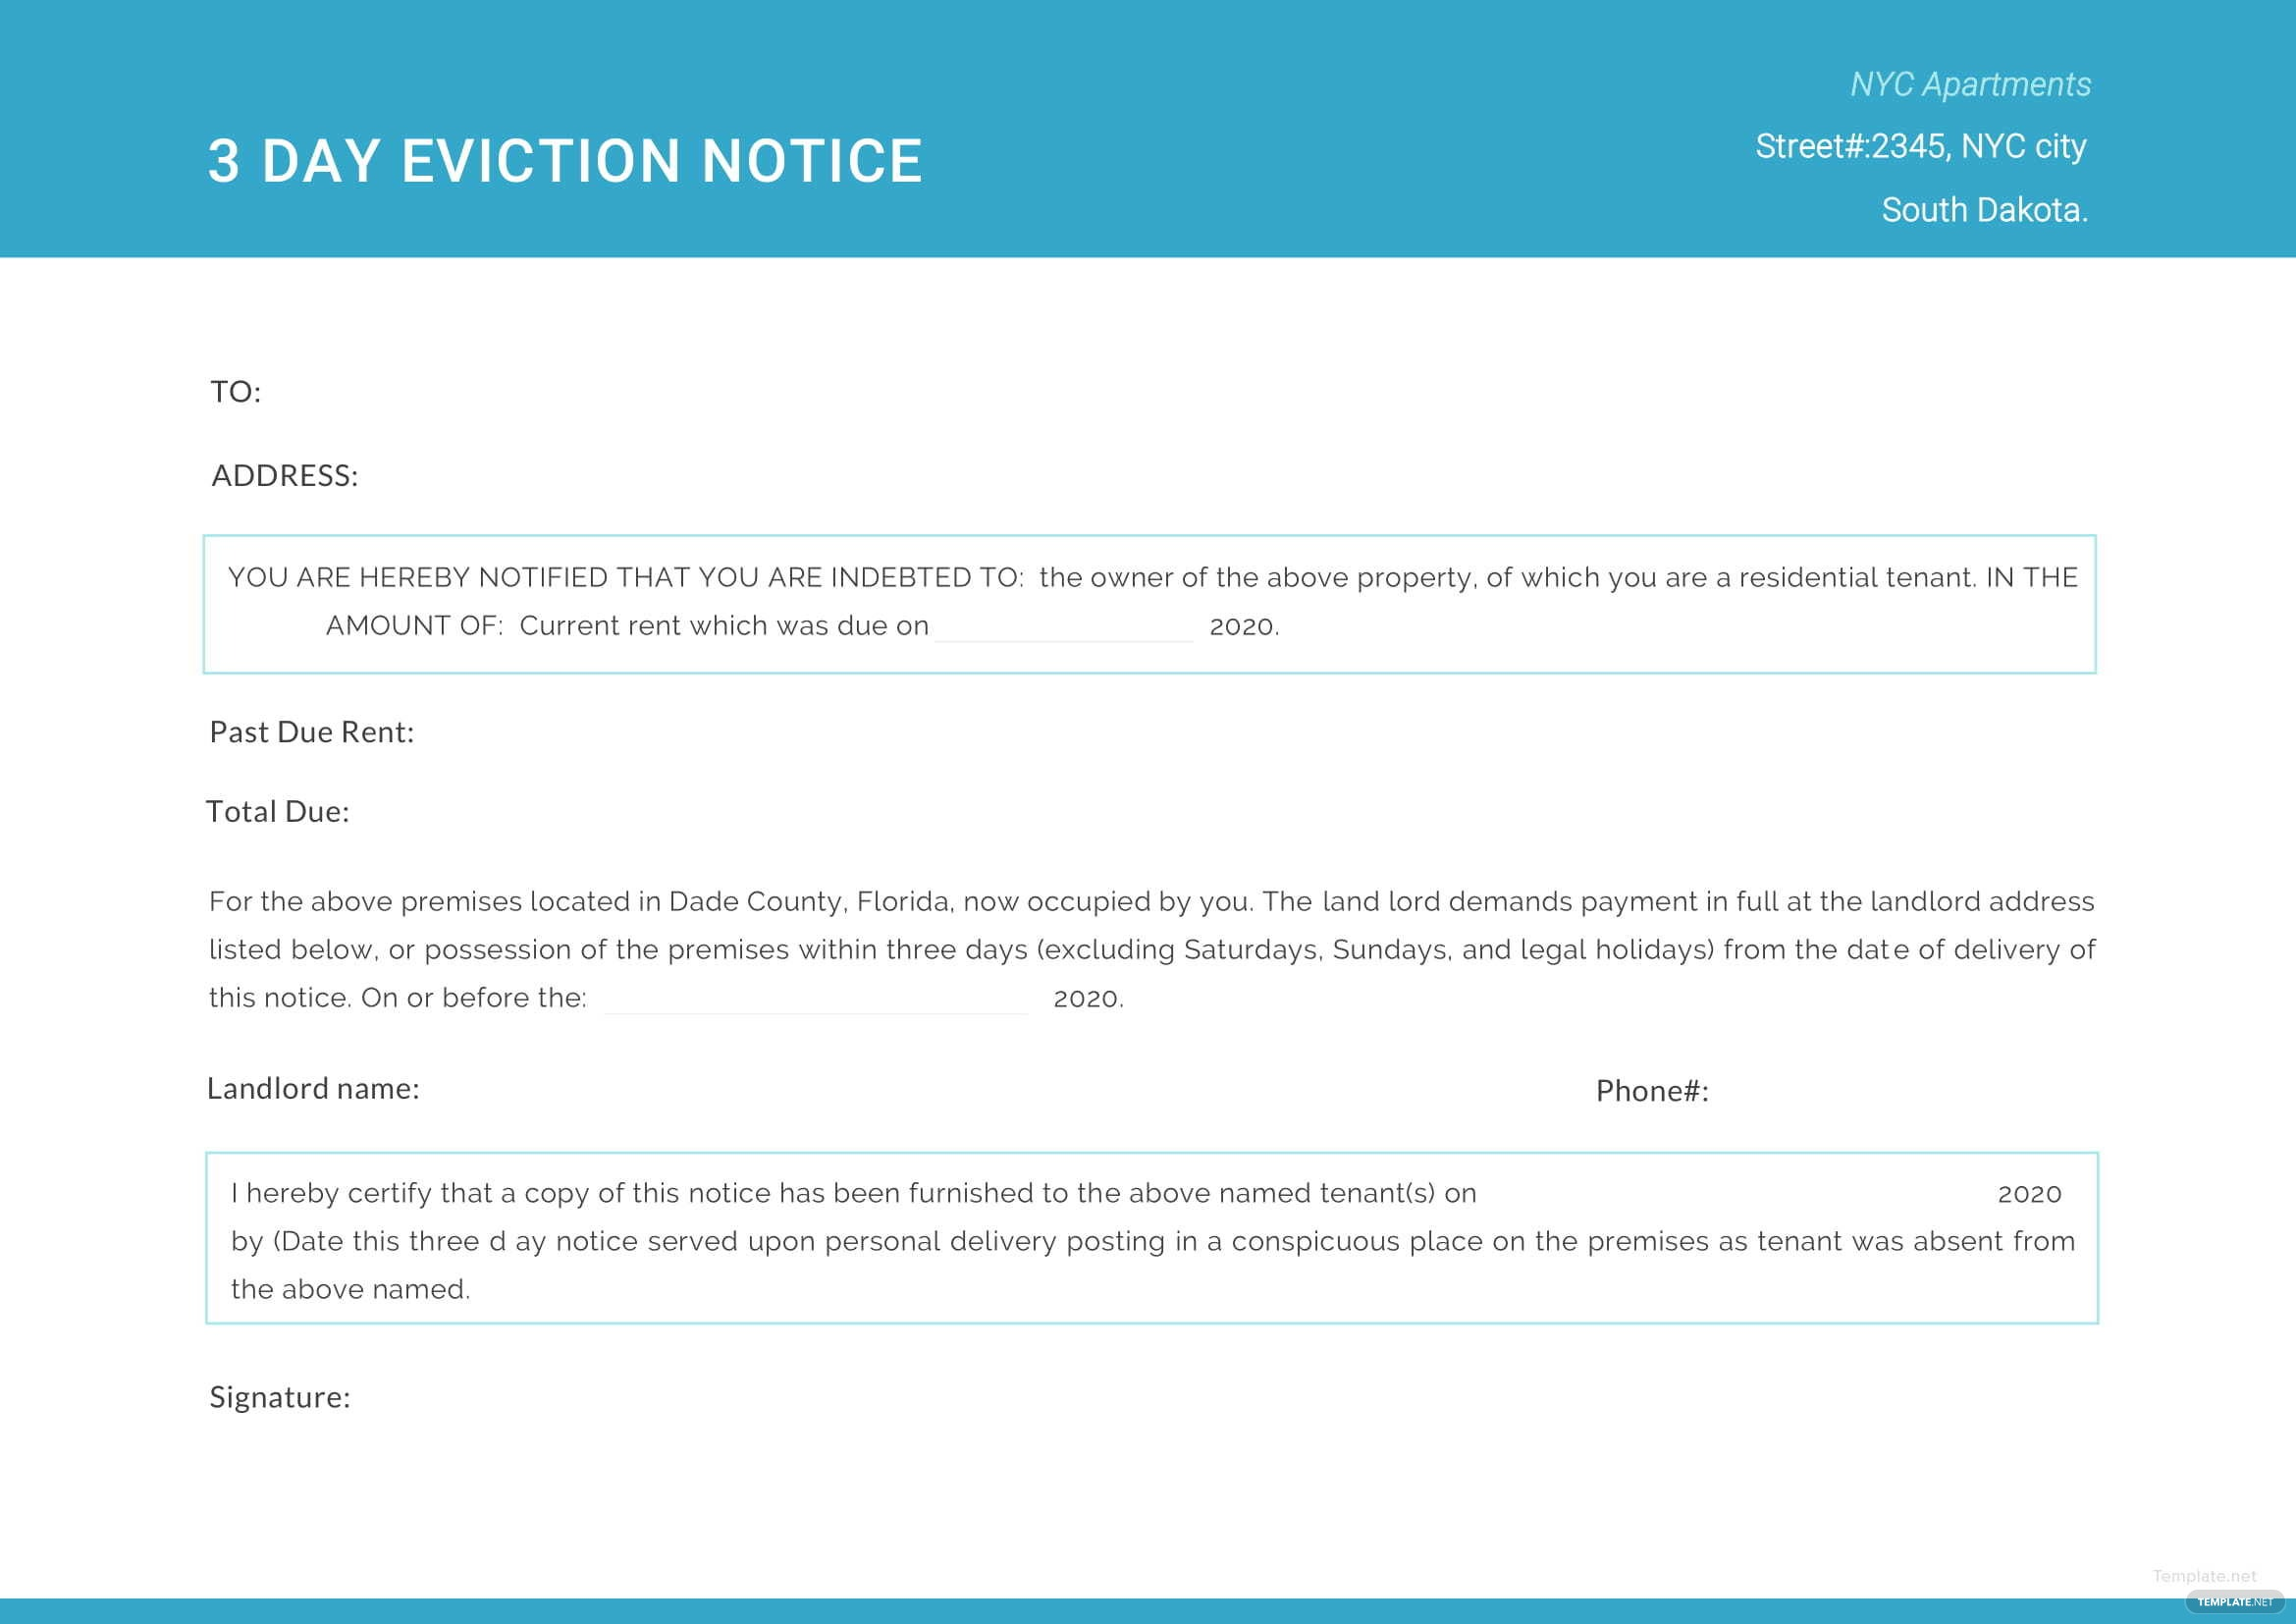 Day Eviction Notice Template In Microsoft Word Apple Pages PDF - 3 day eviction notice template